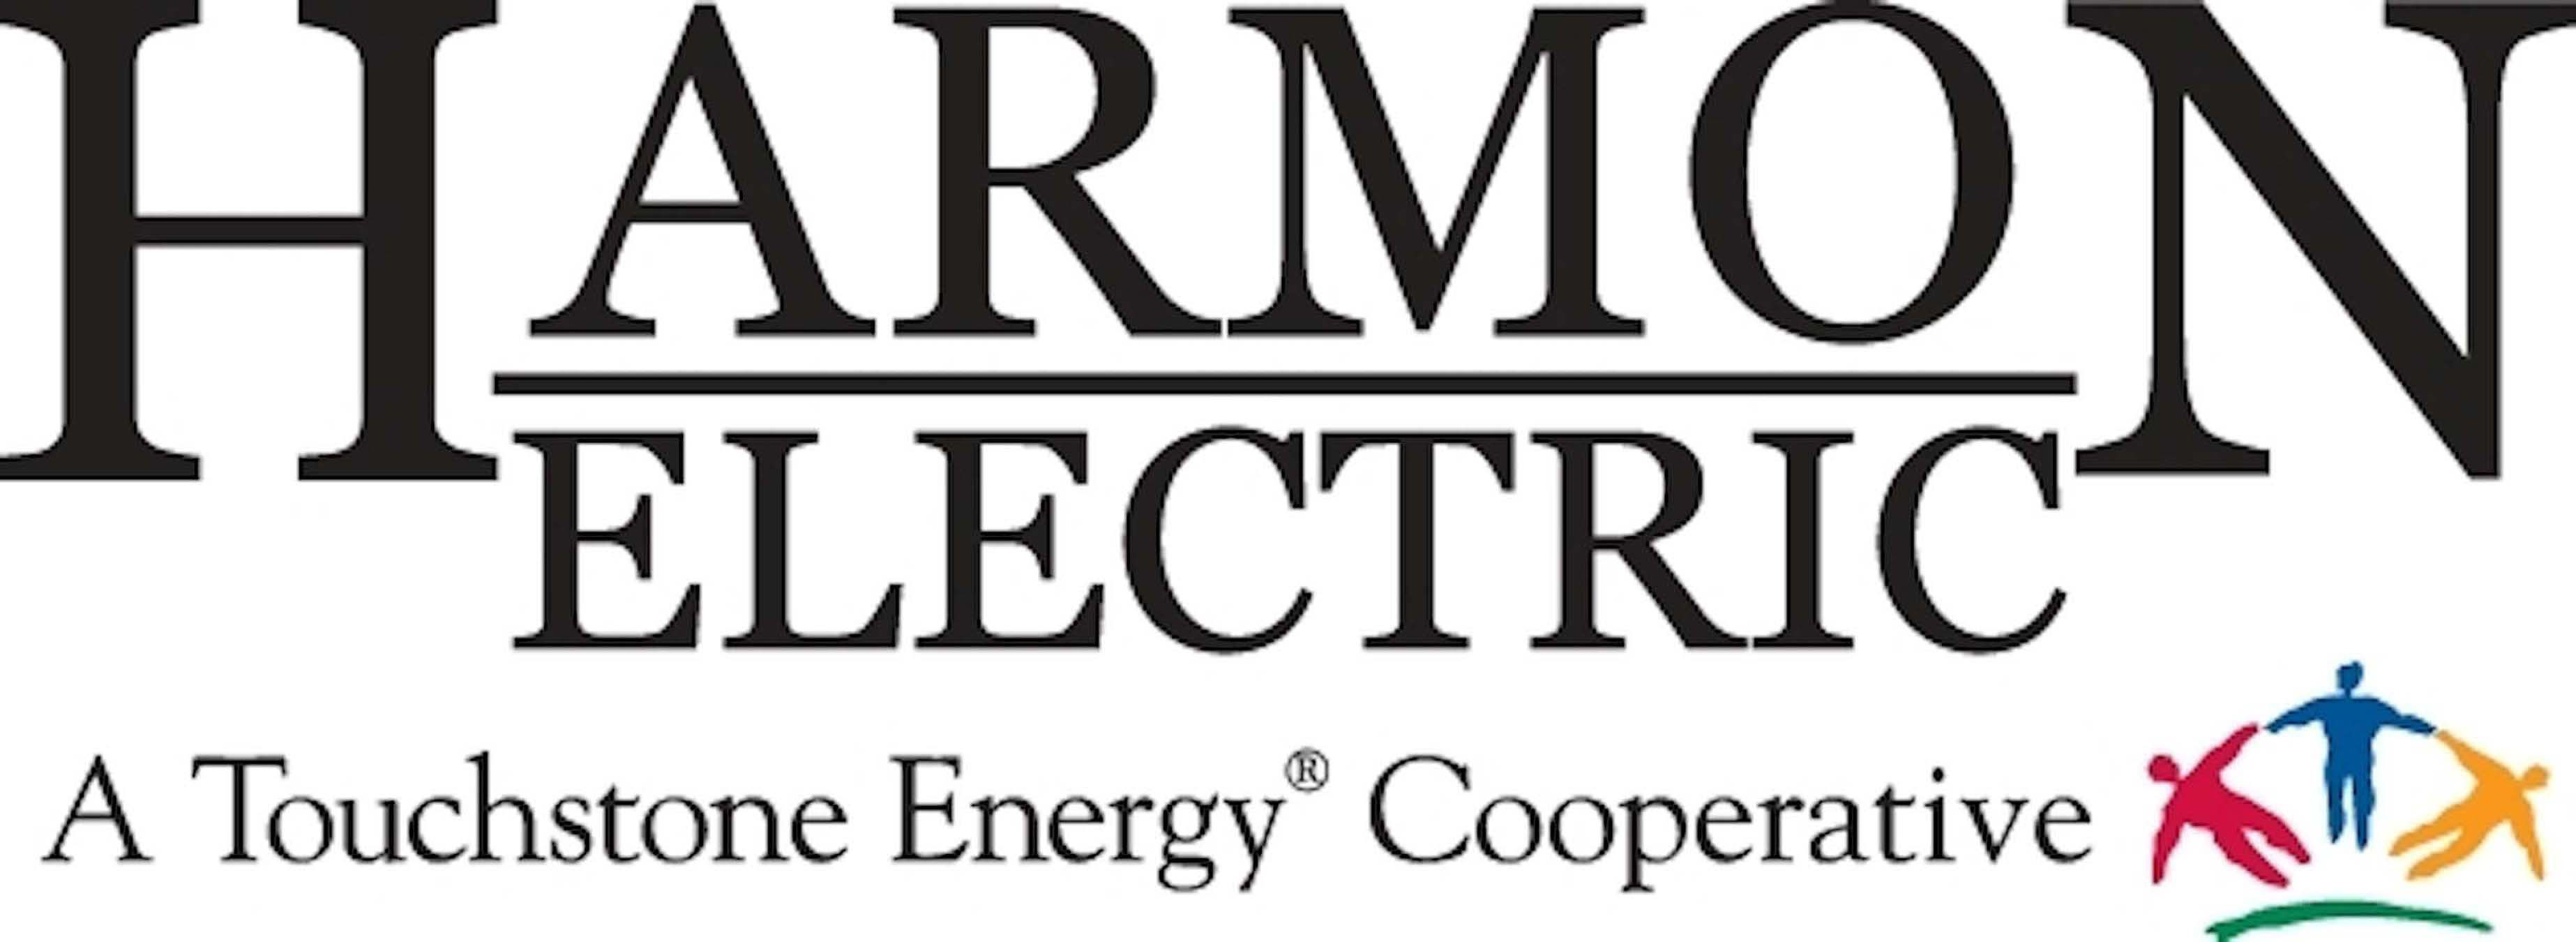 Harmon Electric Association, Inc. Logo